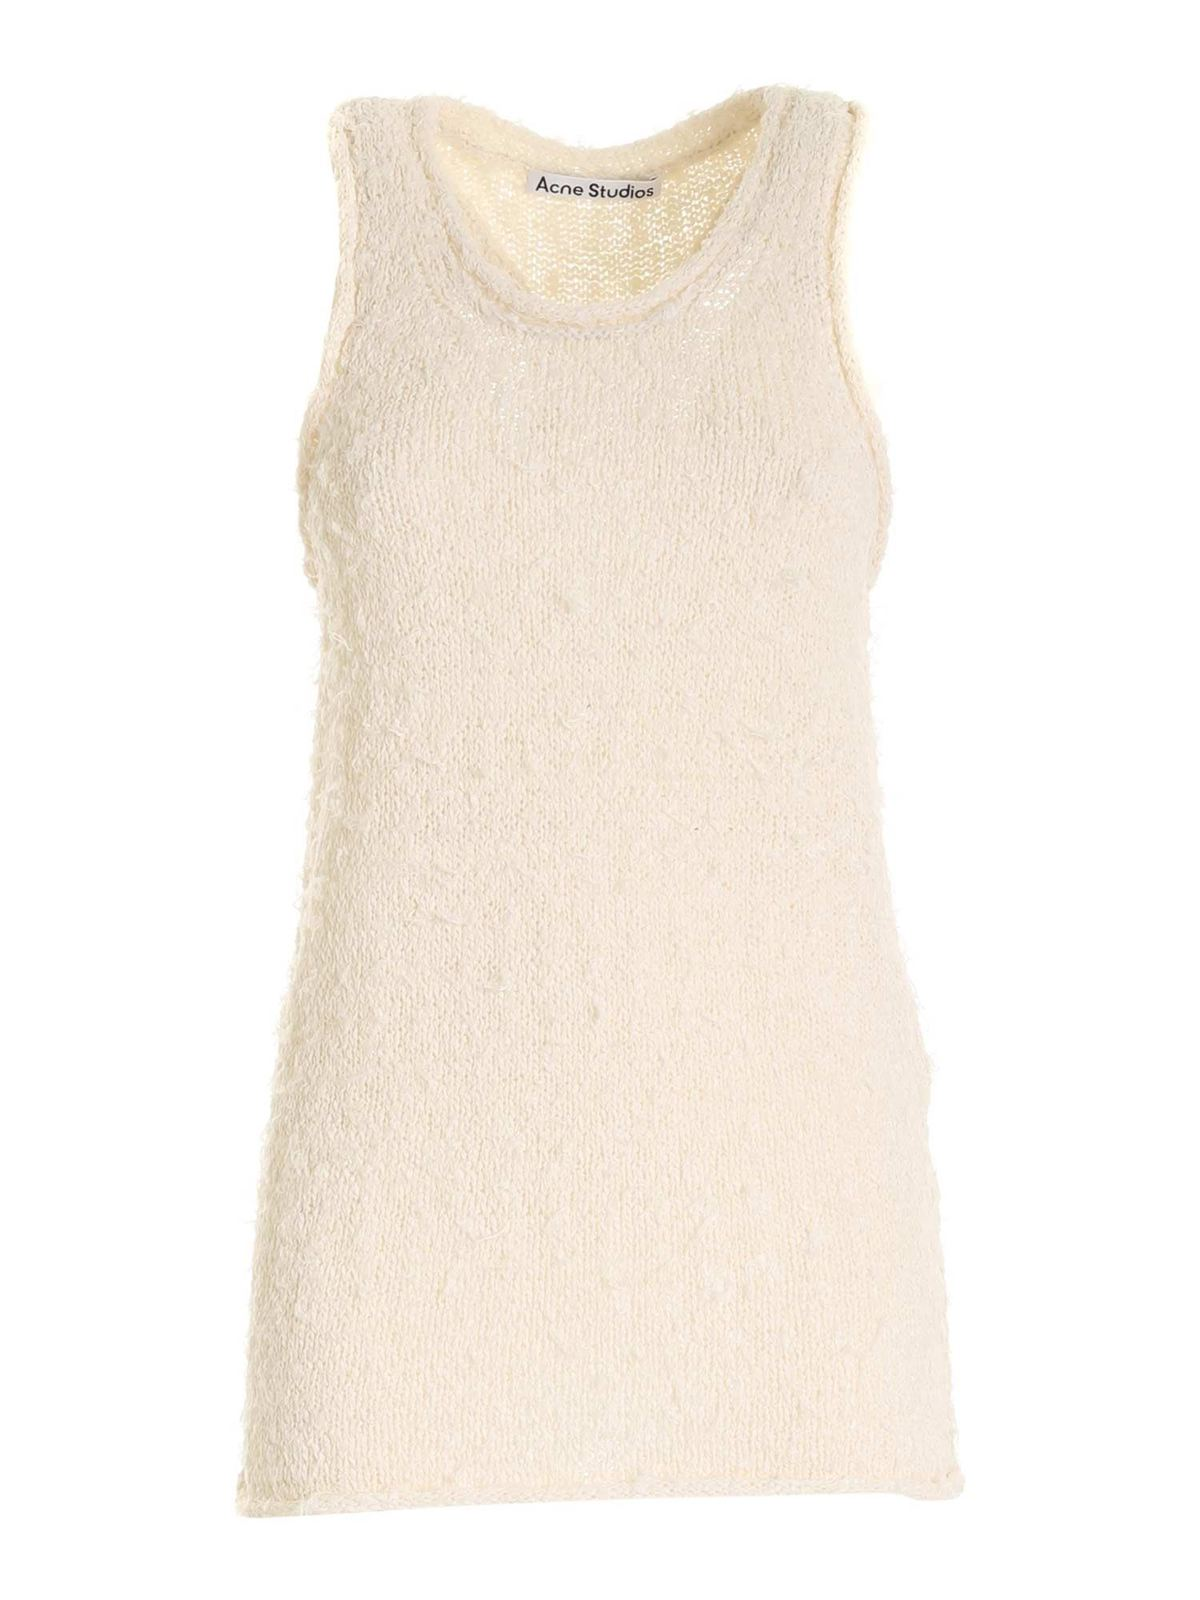 Acne Studios KNITTED TOP IN CREAM COLOR